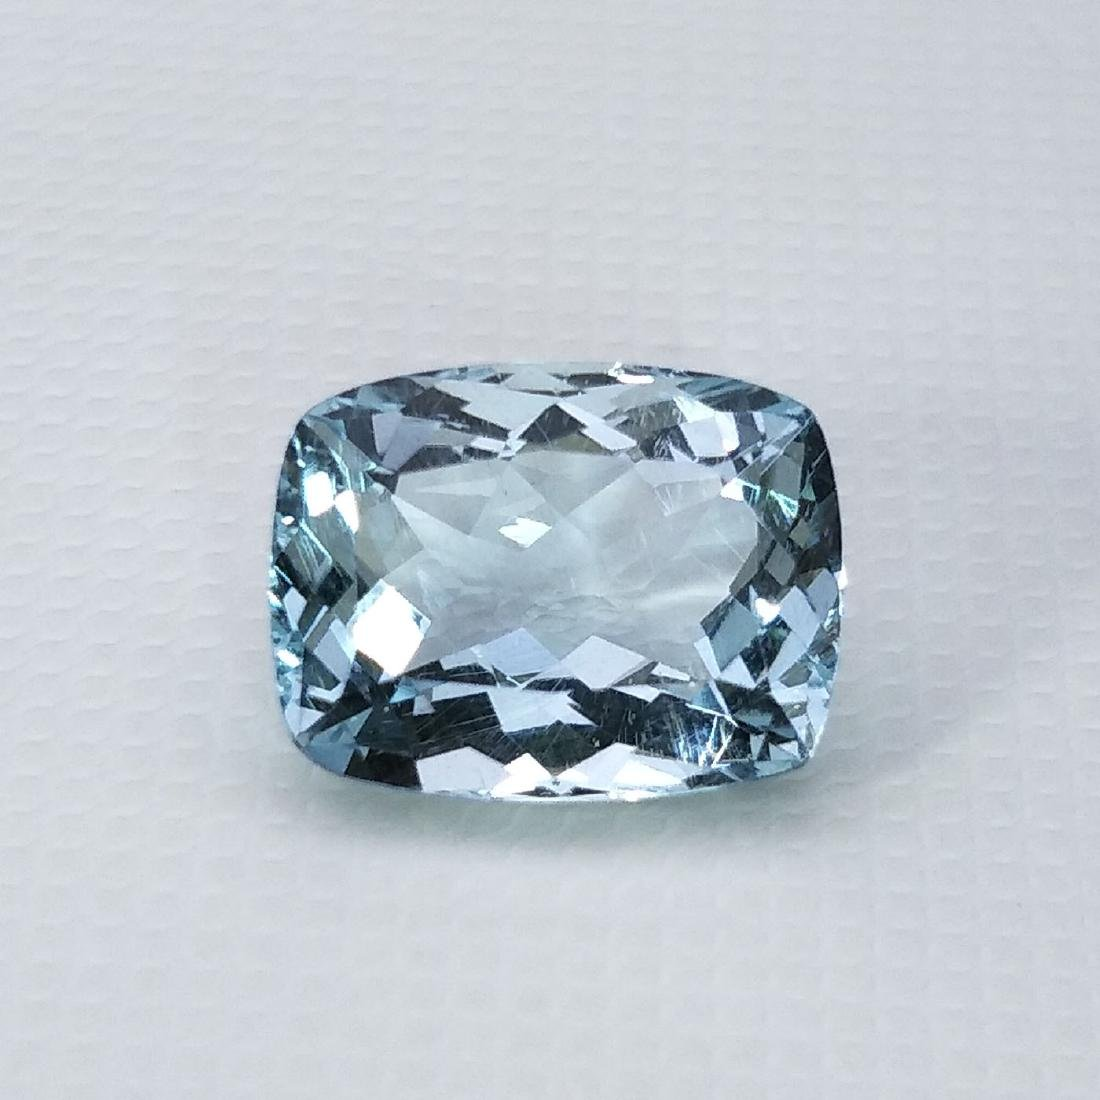 Aquamarine - 4.76 ct